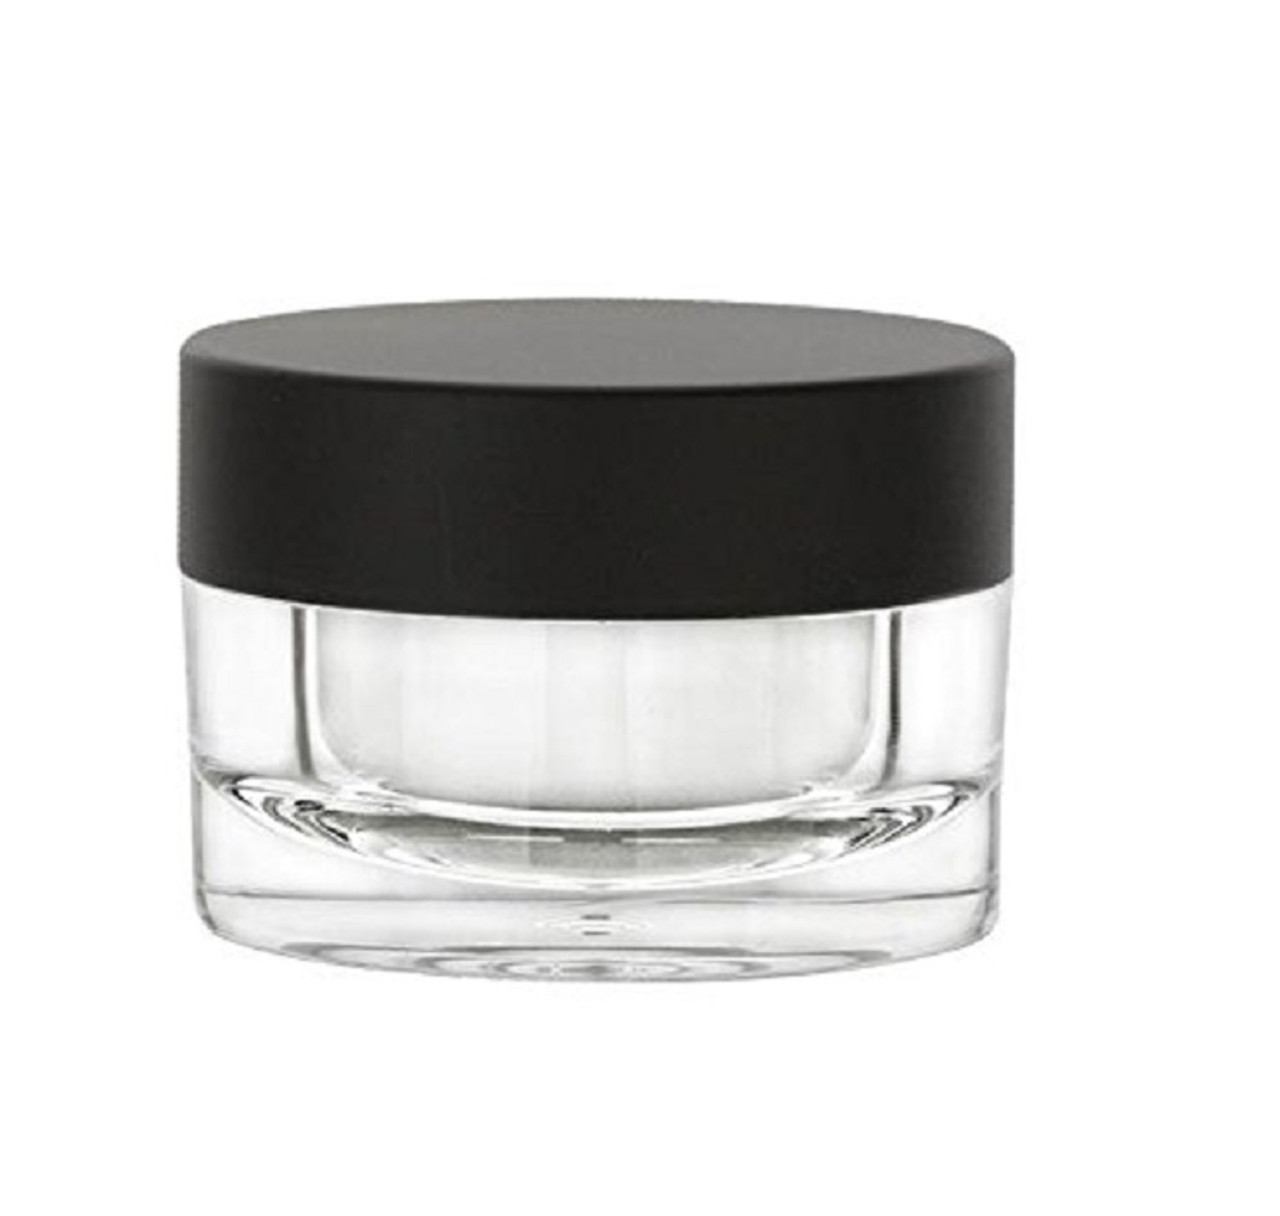 1 oz Acrylic Plastic Jar with Airtight Black Matte Lid and Liner